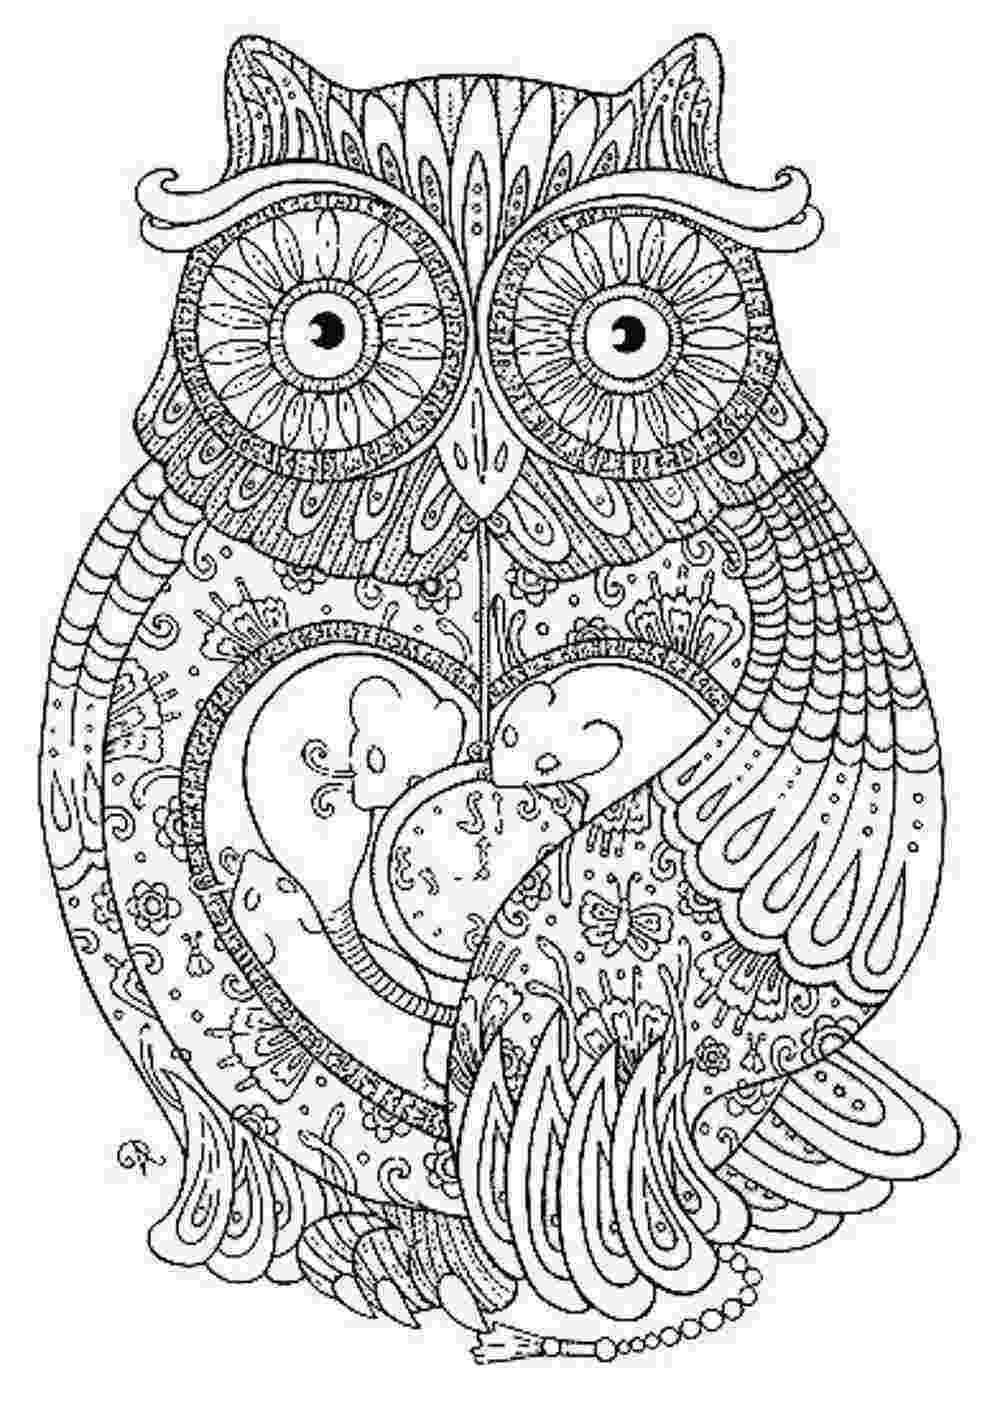 coloring pages mandala animals animal mandala coloring pages to download and print for pages mandala coloring animals